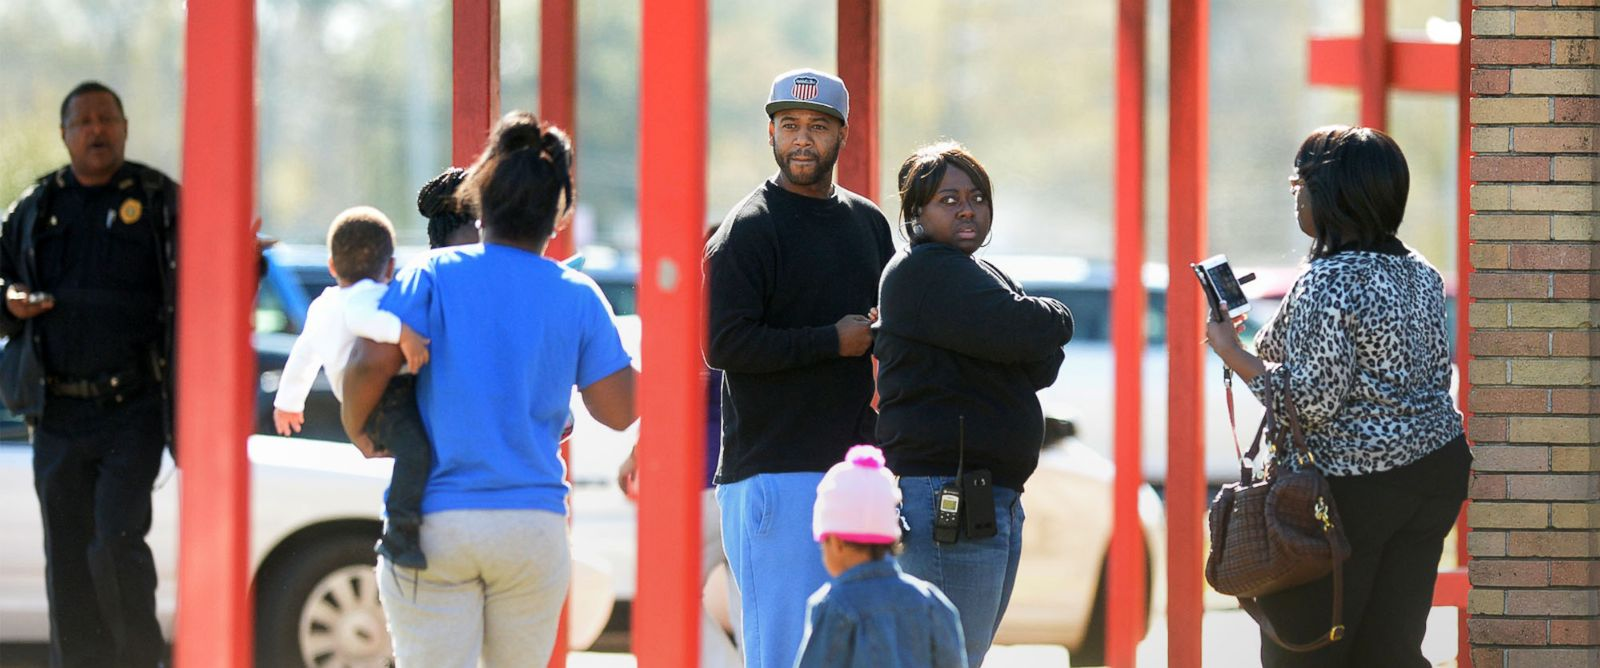 PHOTO: Parents arrive at Marshall Middle School in Beaumont, Texas, Jan. 28, 2016, after an evacuation from an alleged carbon monoxide leak. Sick students were transported to local hospitals while unaffected students were taken to West Brook High School.